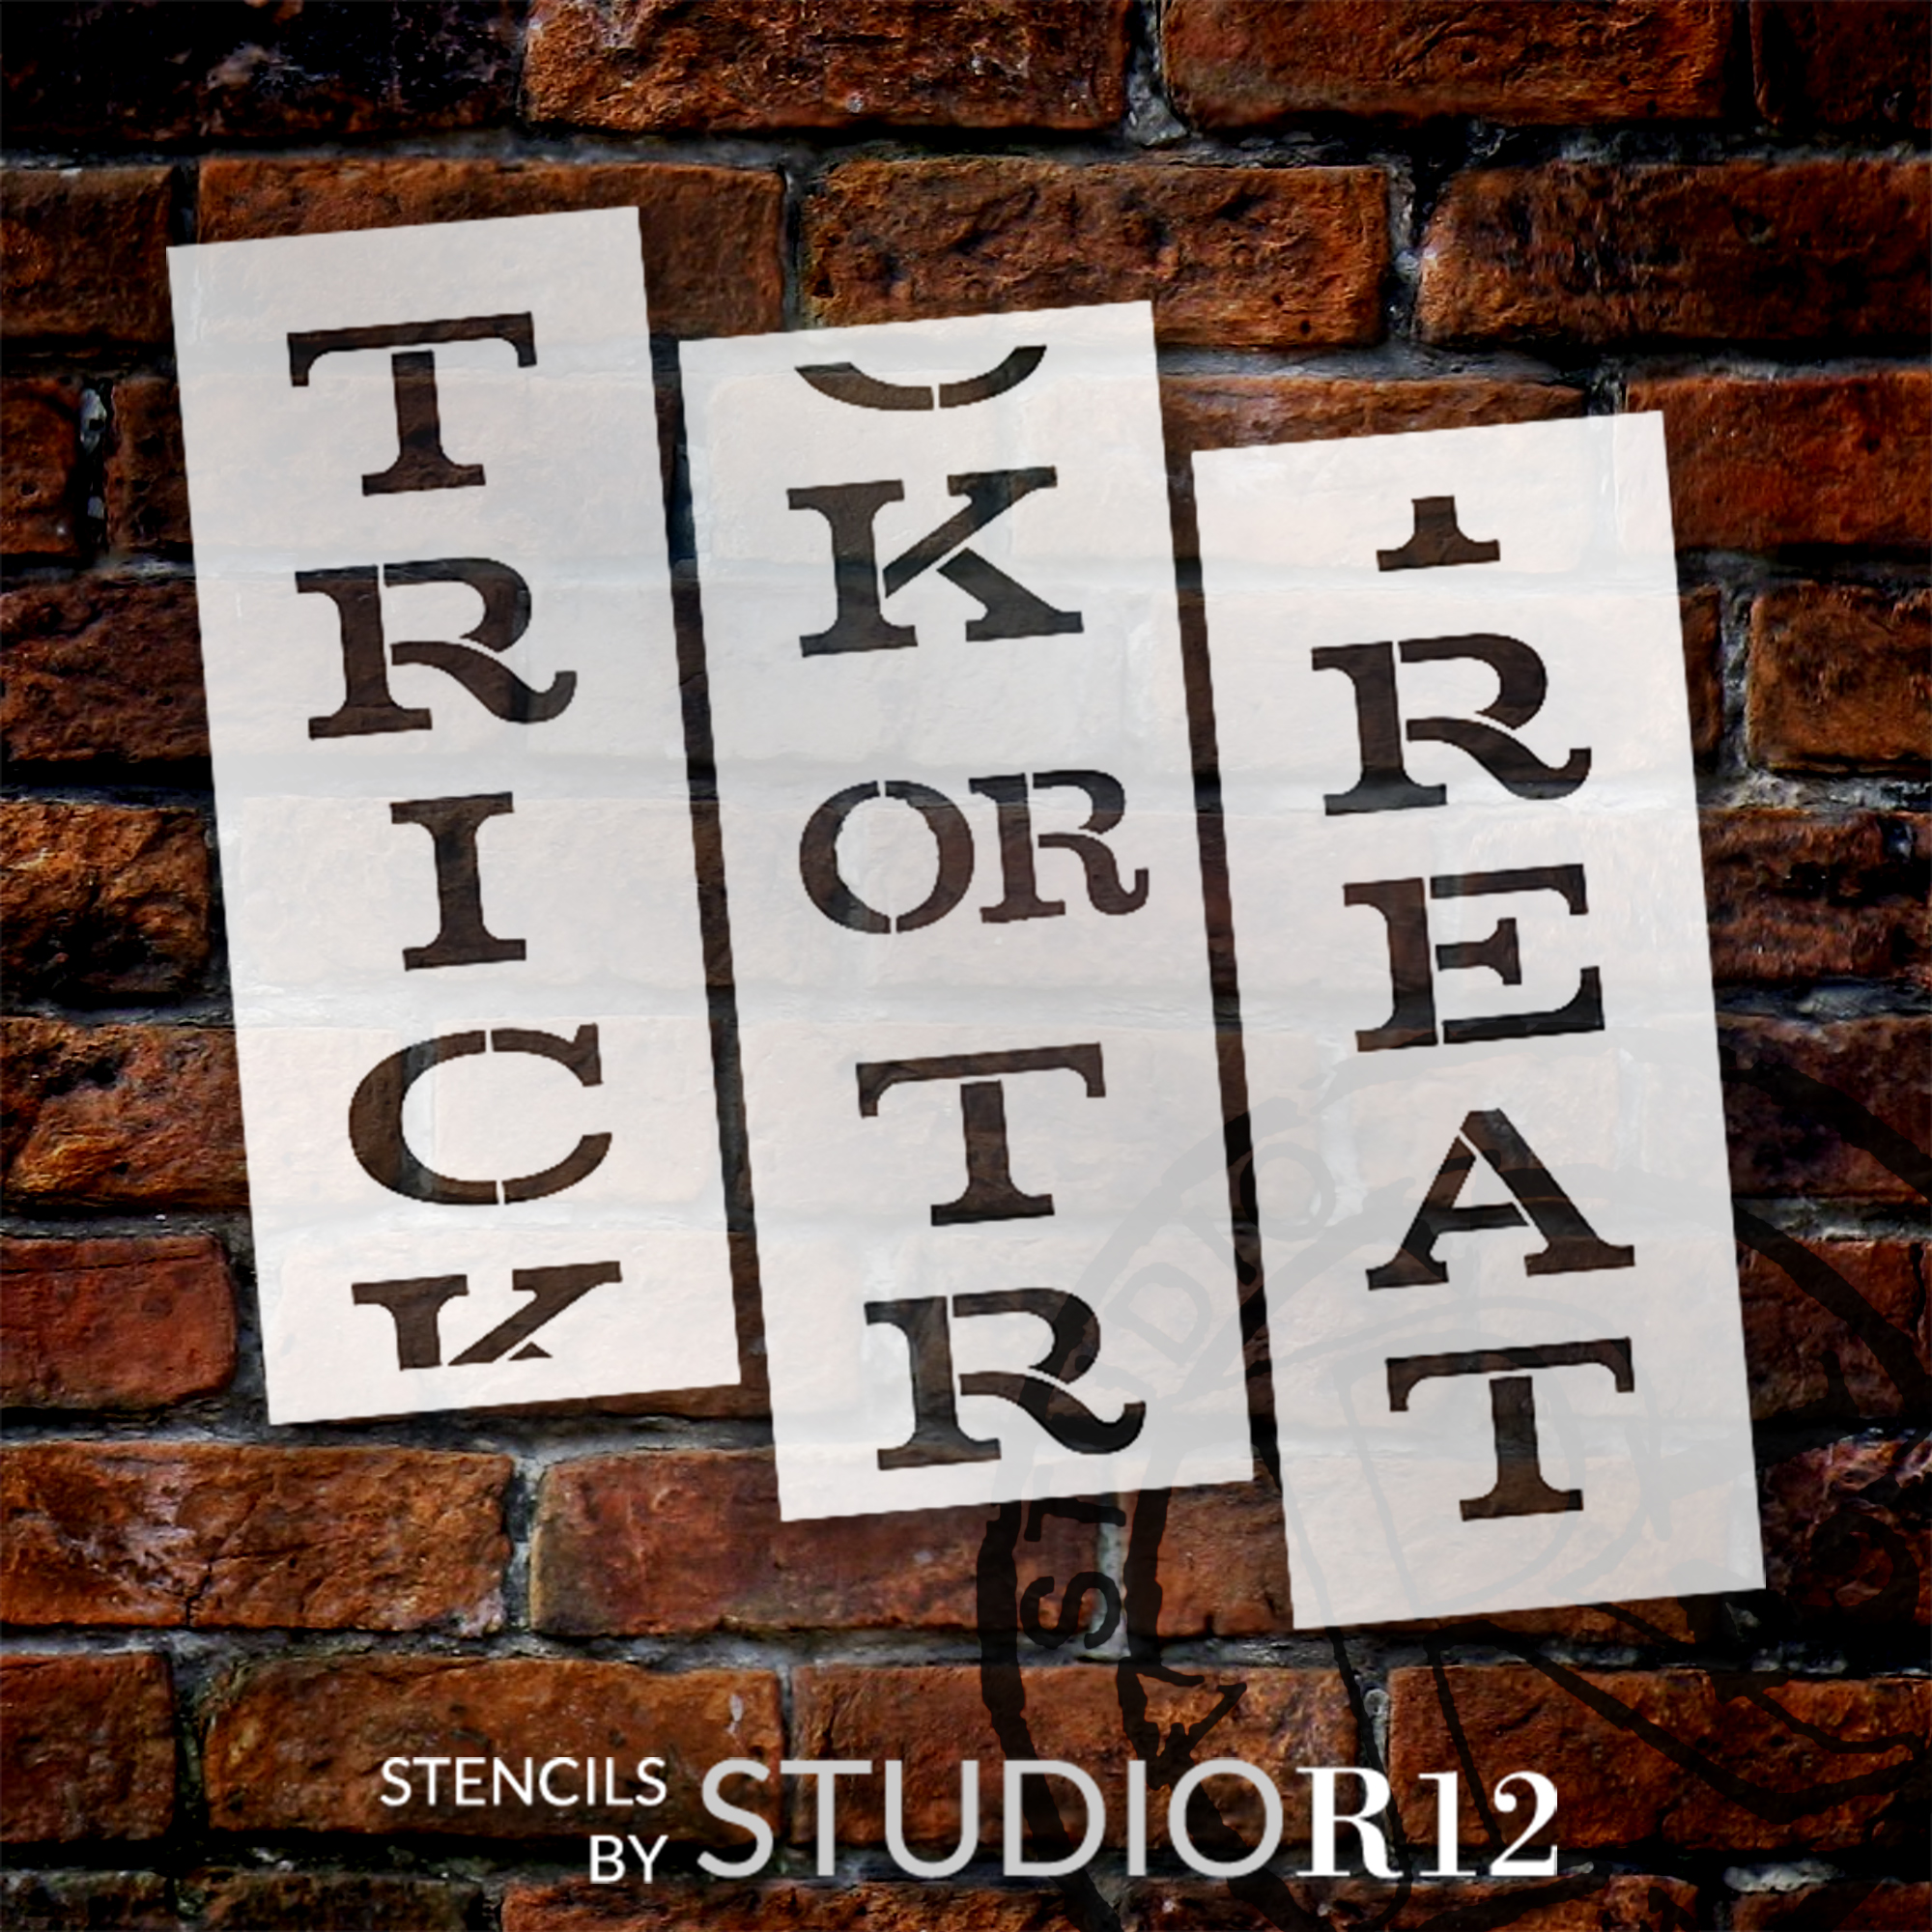 Trick or Treat Tall Porch Stencil by Studio R12 | 3 Piece | DIY Large Vertical Halloween Outdoor Home Decor for Entryway | Craft & Paint Fall Wood Leaner Signs | Reusable Mylar Template | Size 6ft